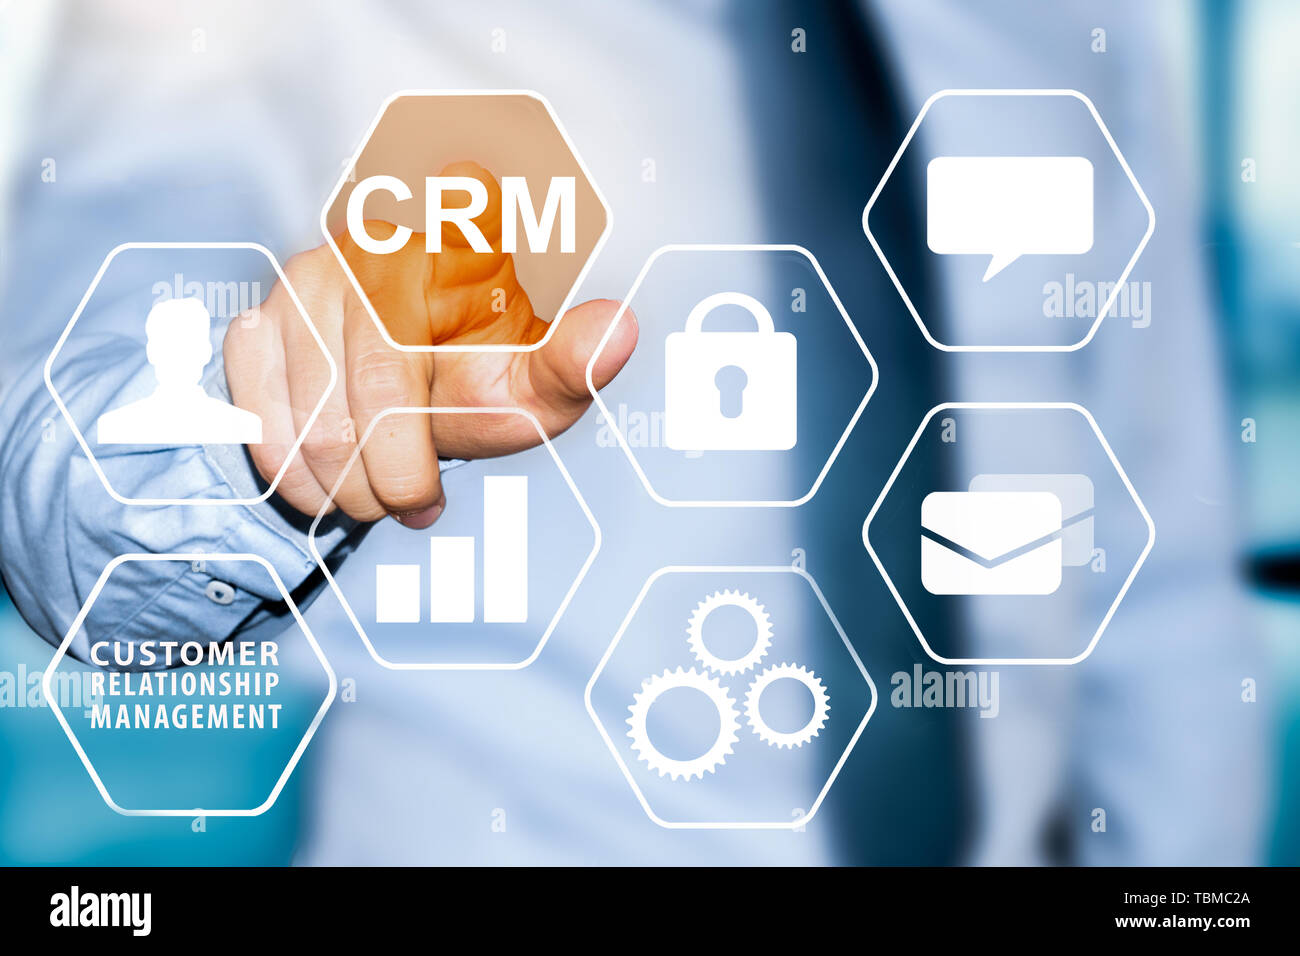 CRM Customer relationship management concept. businessman hand selecting CRM button. - Stock Image